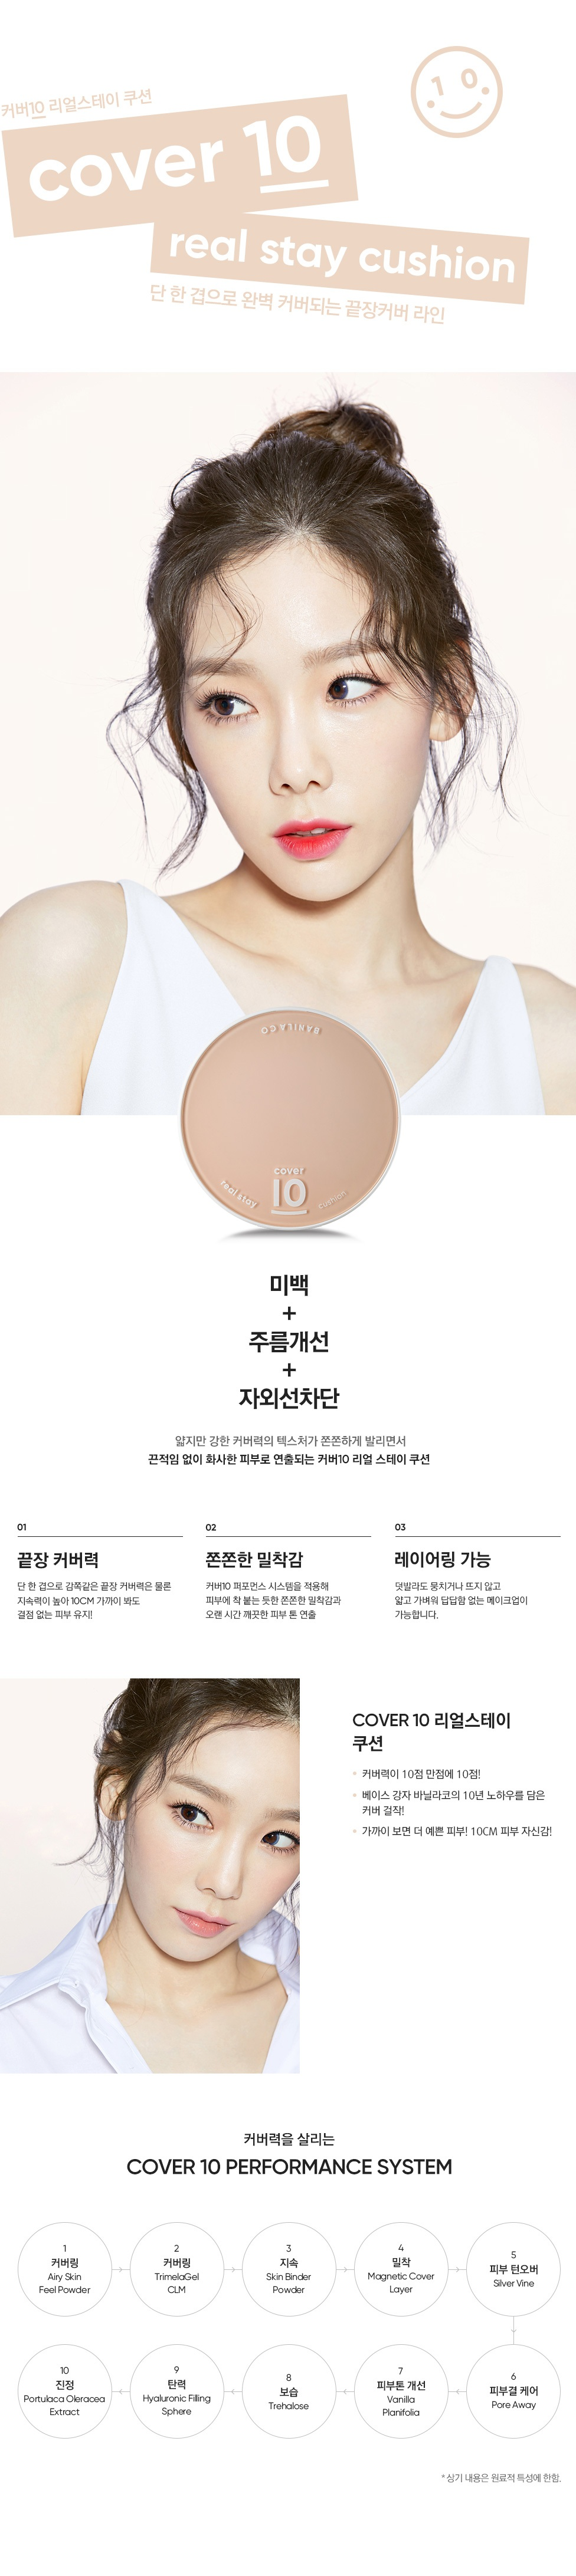 Banila Co Cover 10 Real Stay Cushion With Refill korean cosmetic skincare product online shop malaysia macau singapore1